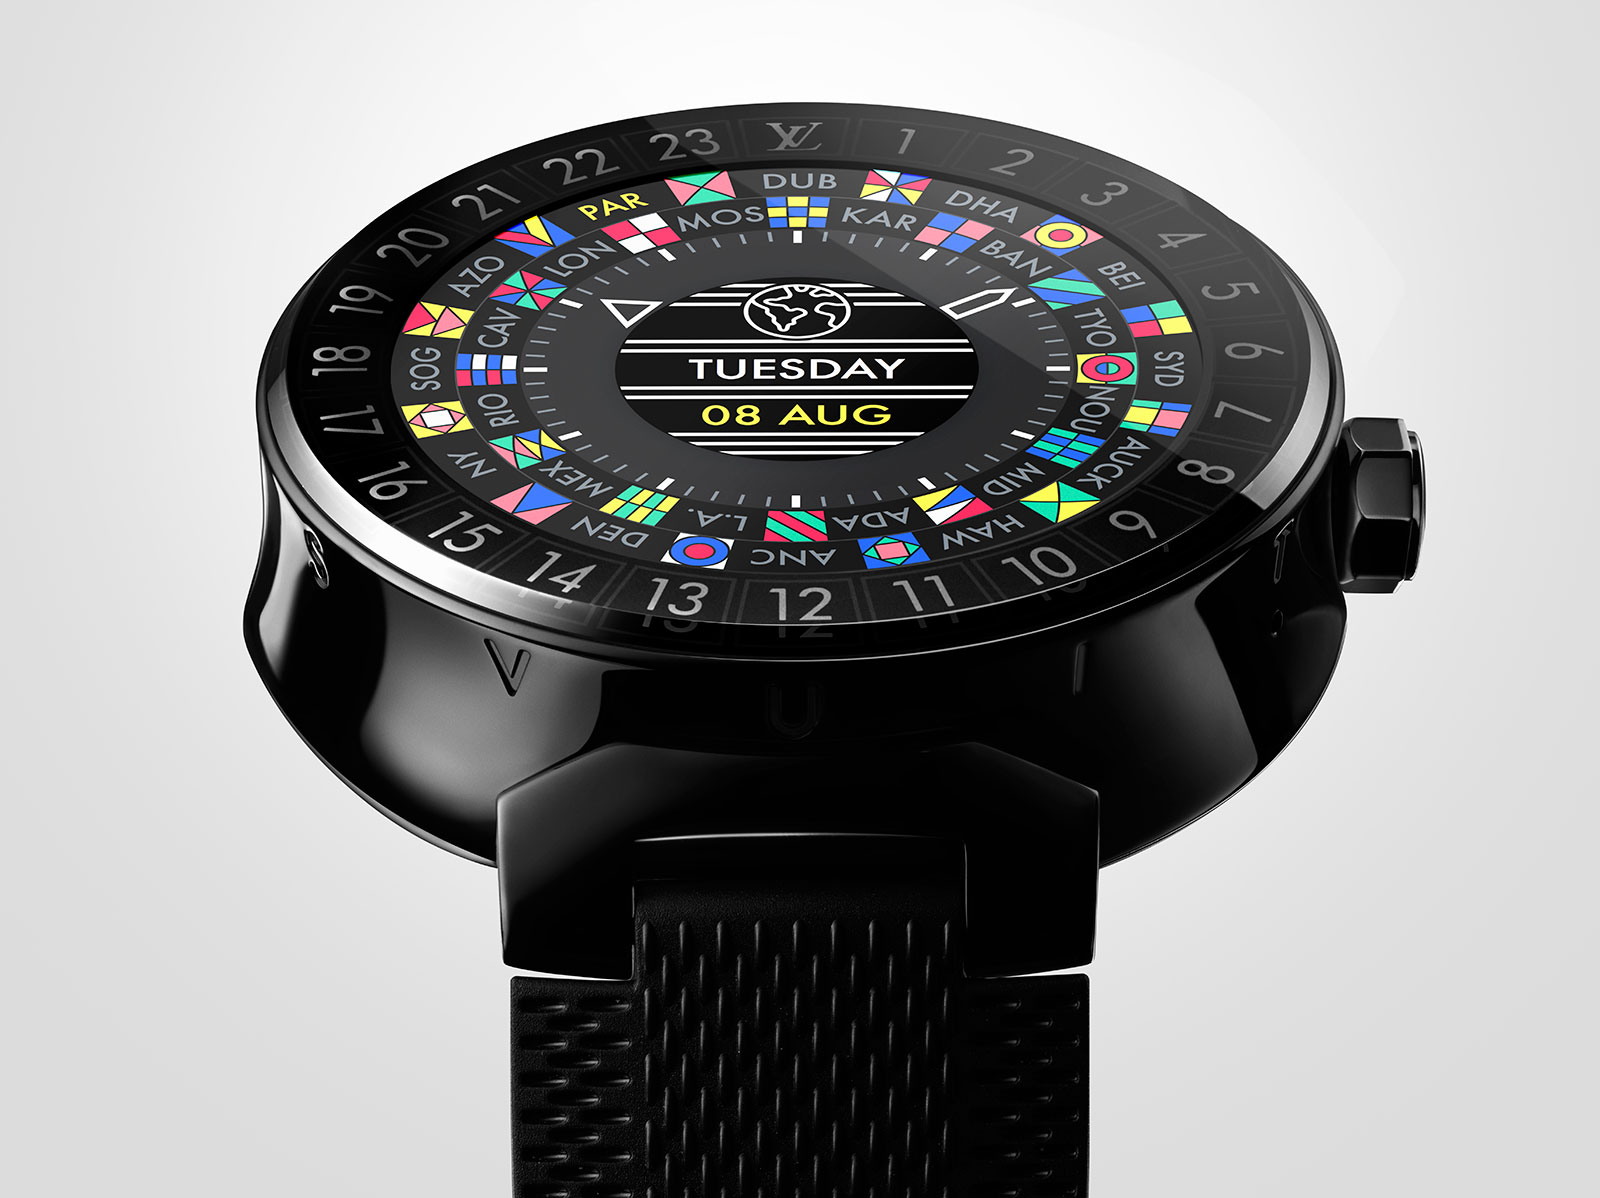 Louis Vuitton Tambour Horizon smartwatch 2